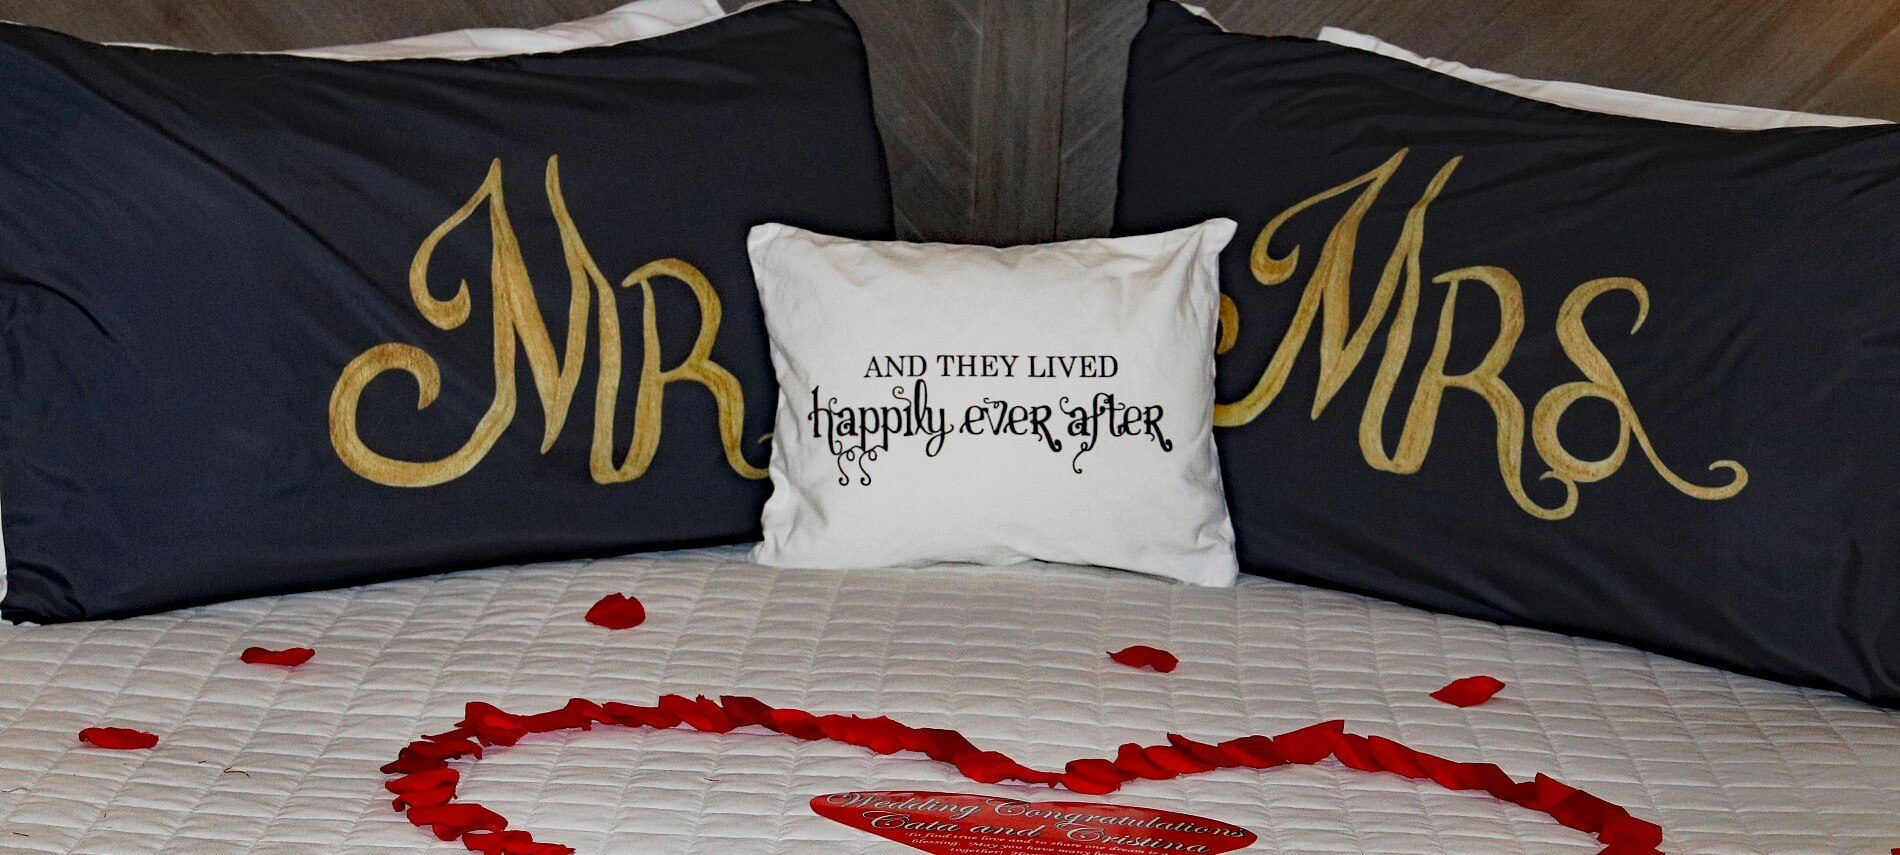 Bed with Mr and Mrs pillows and red flower petals in the shape of a heart